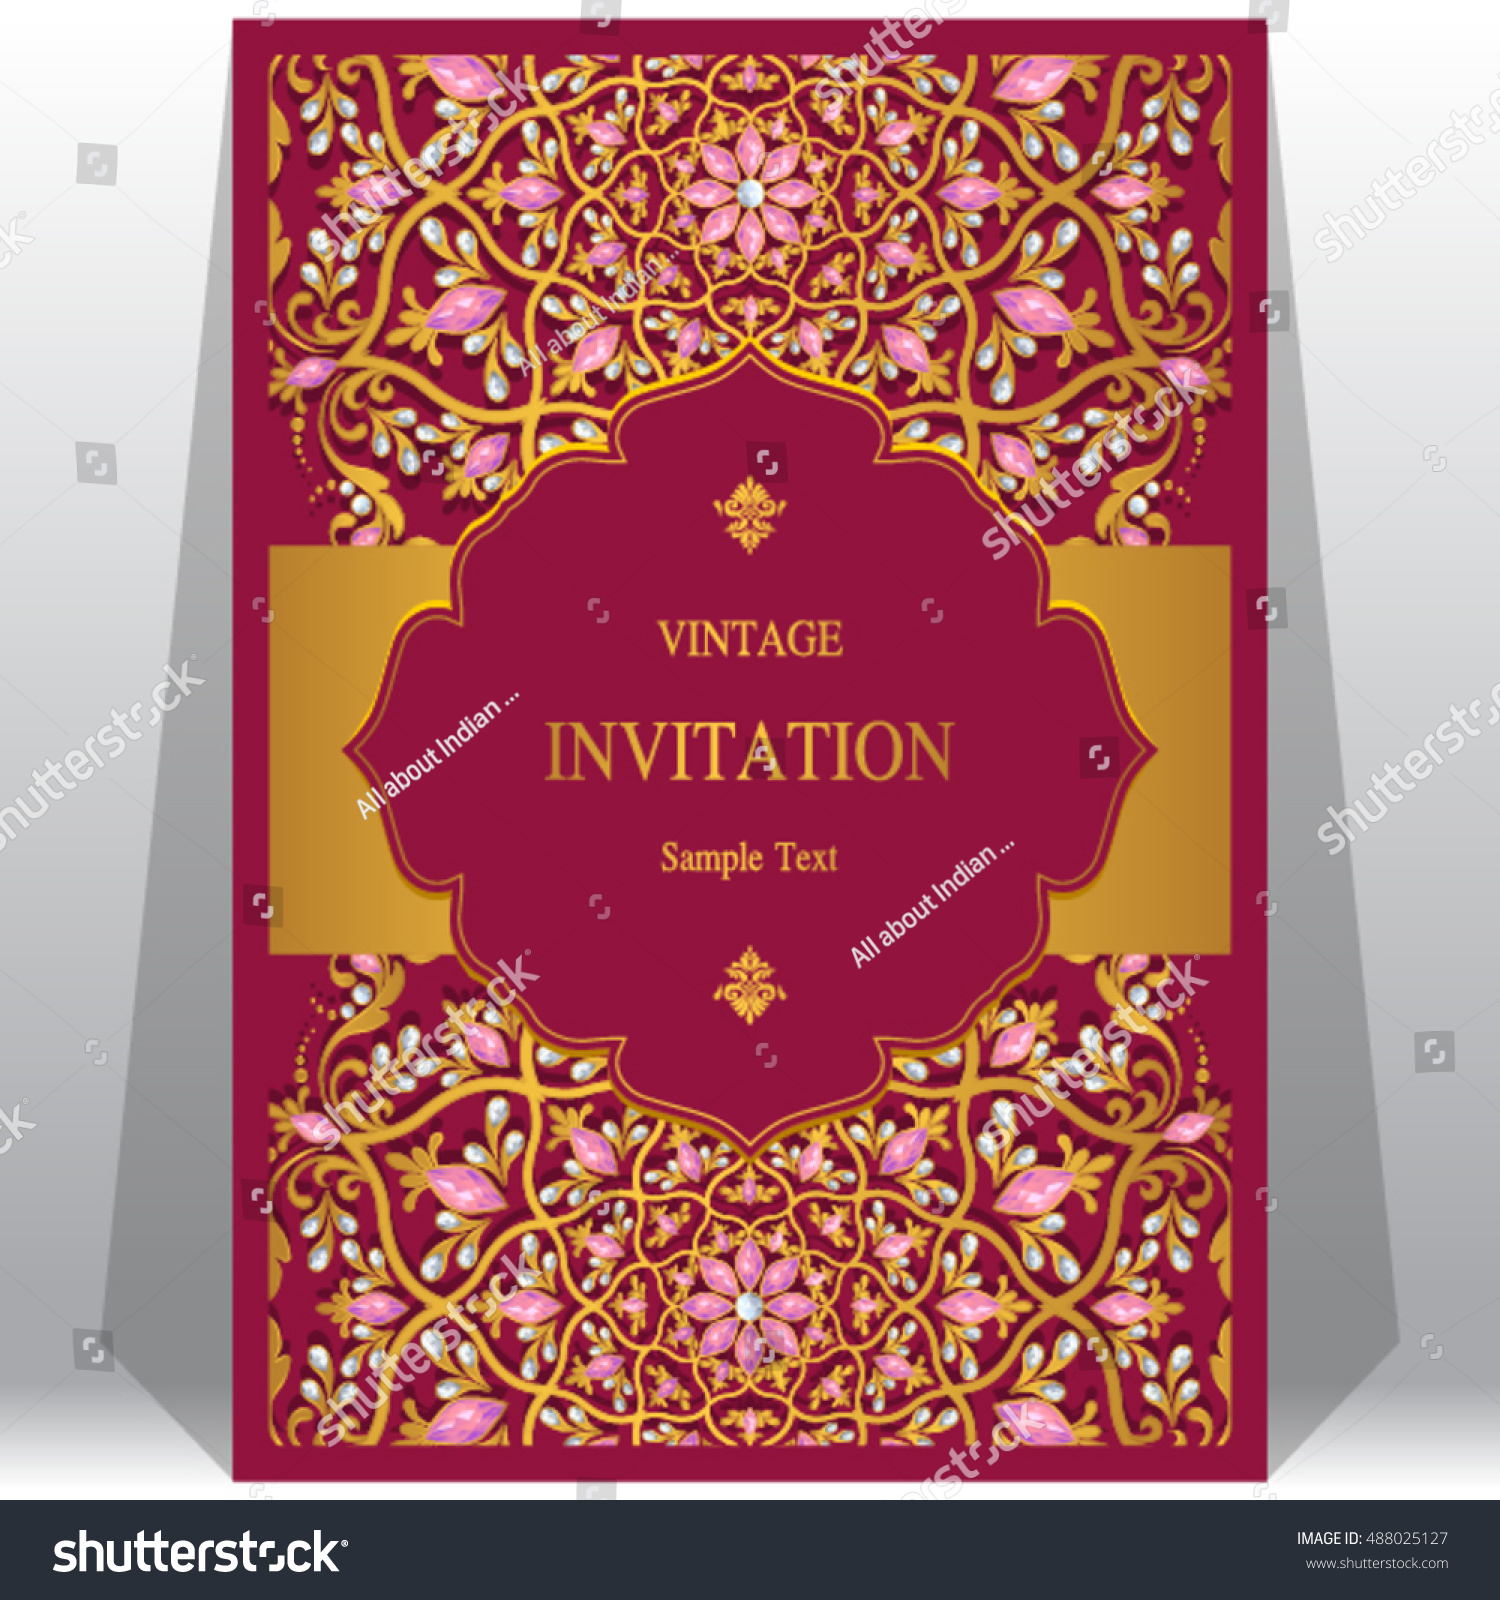 Wedding invitation or card with abstract background. | EZ Canvas